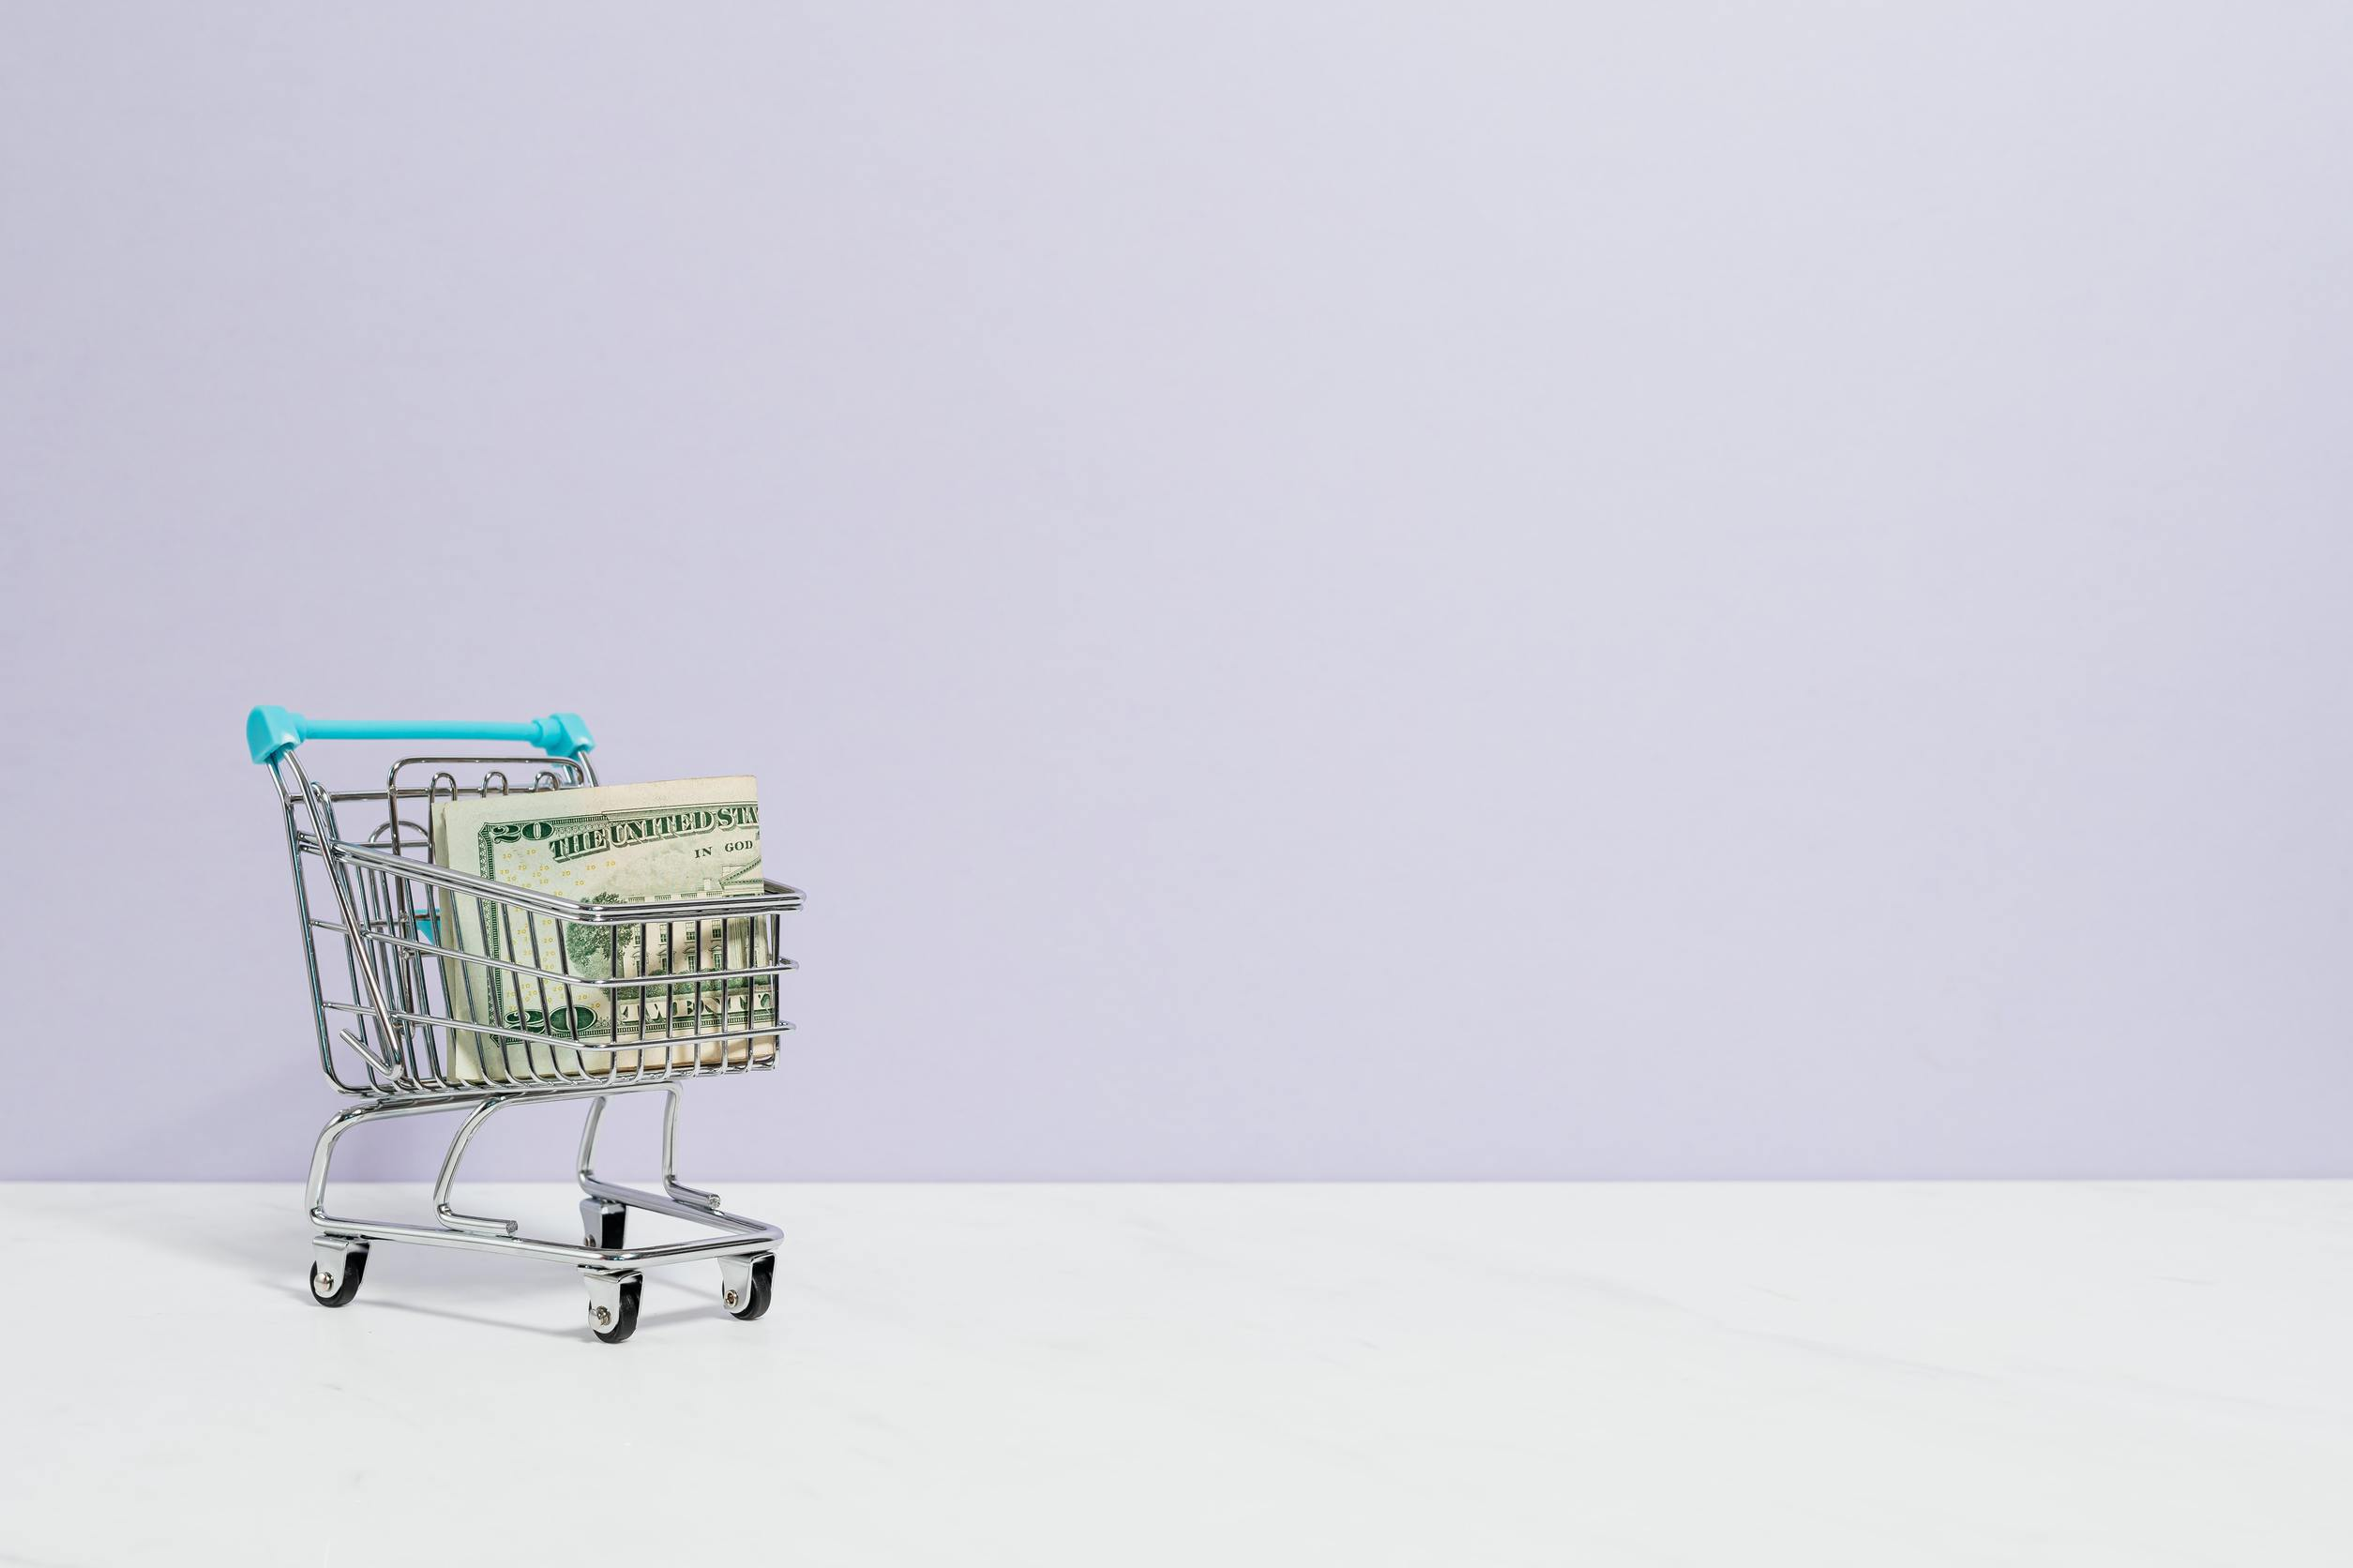 Proactively populate cart through combination of customer history analysis and filtering techniques